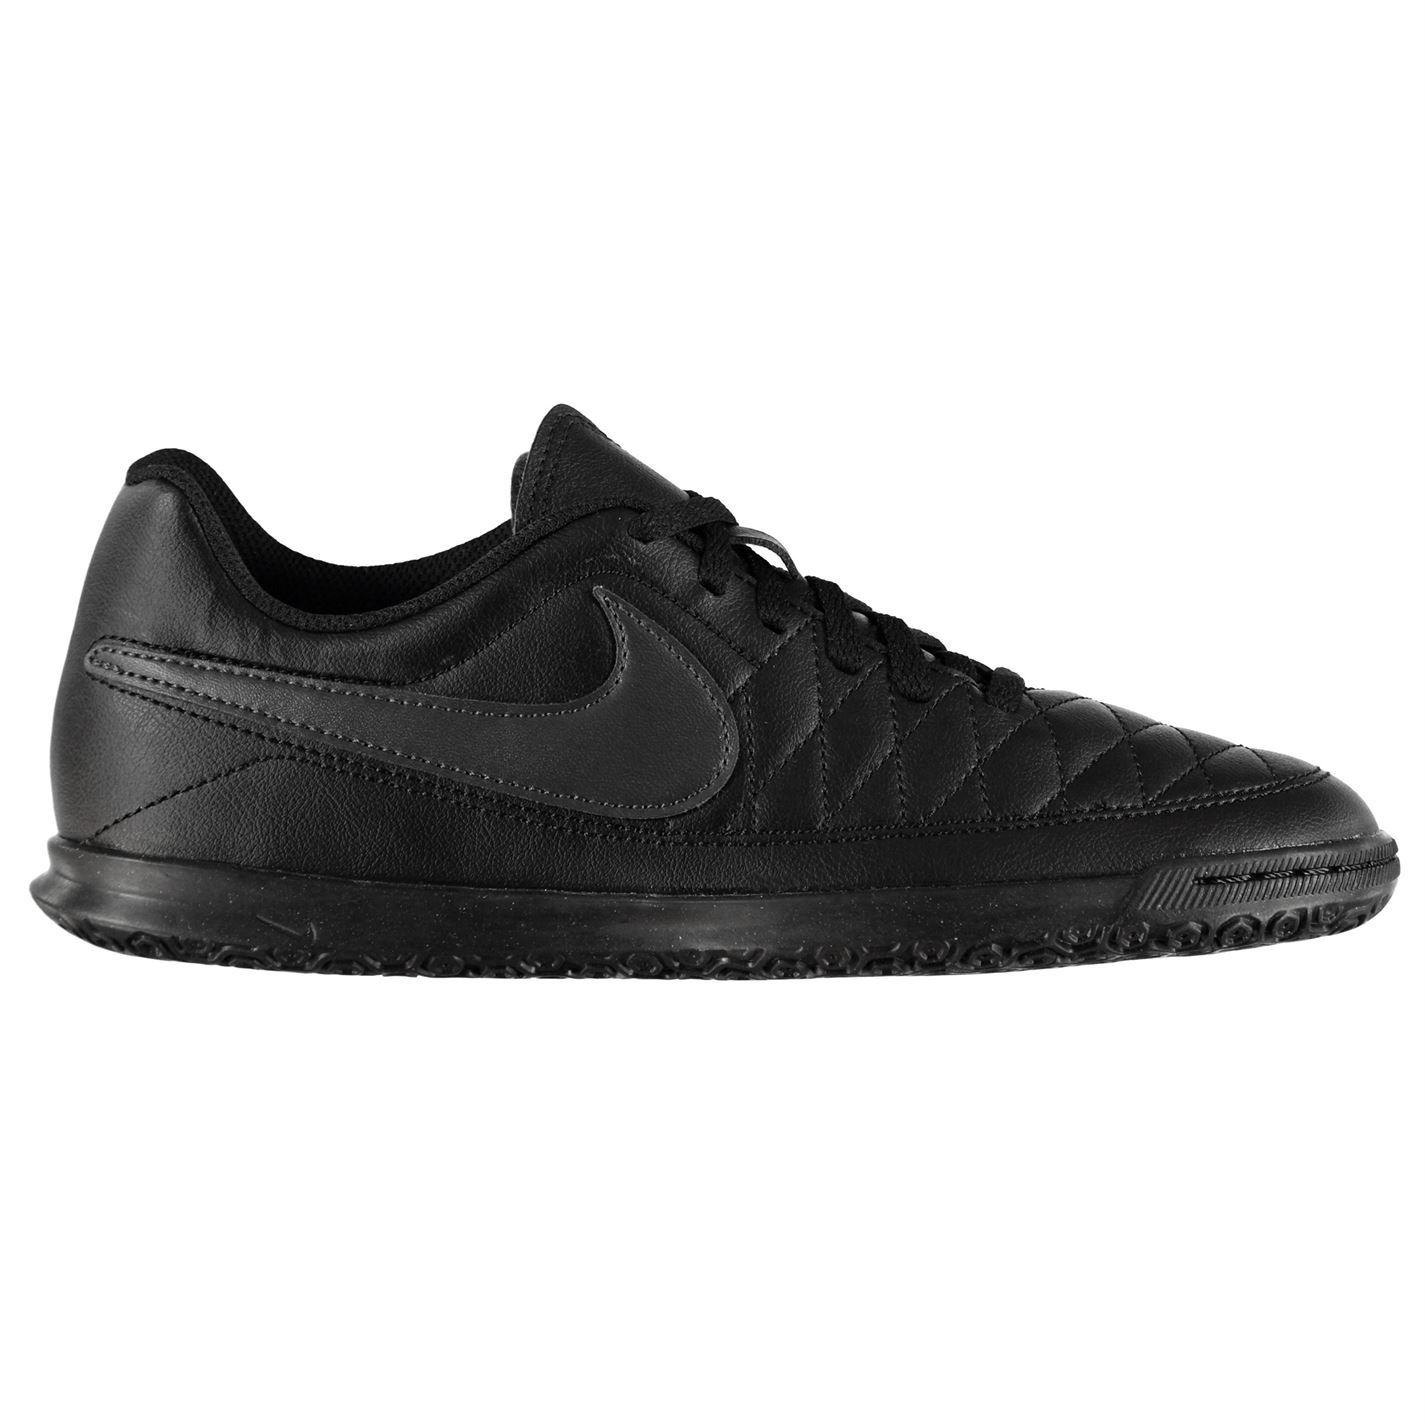 Nike-majestry-Indoor-Football-Baskets-Pour-Homme-Football-Futsal-Chaussures-Baskets-Bottes miniature 9